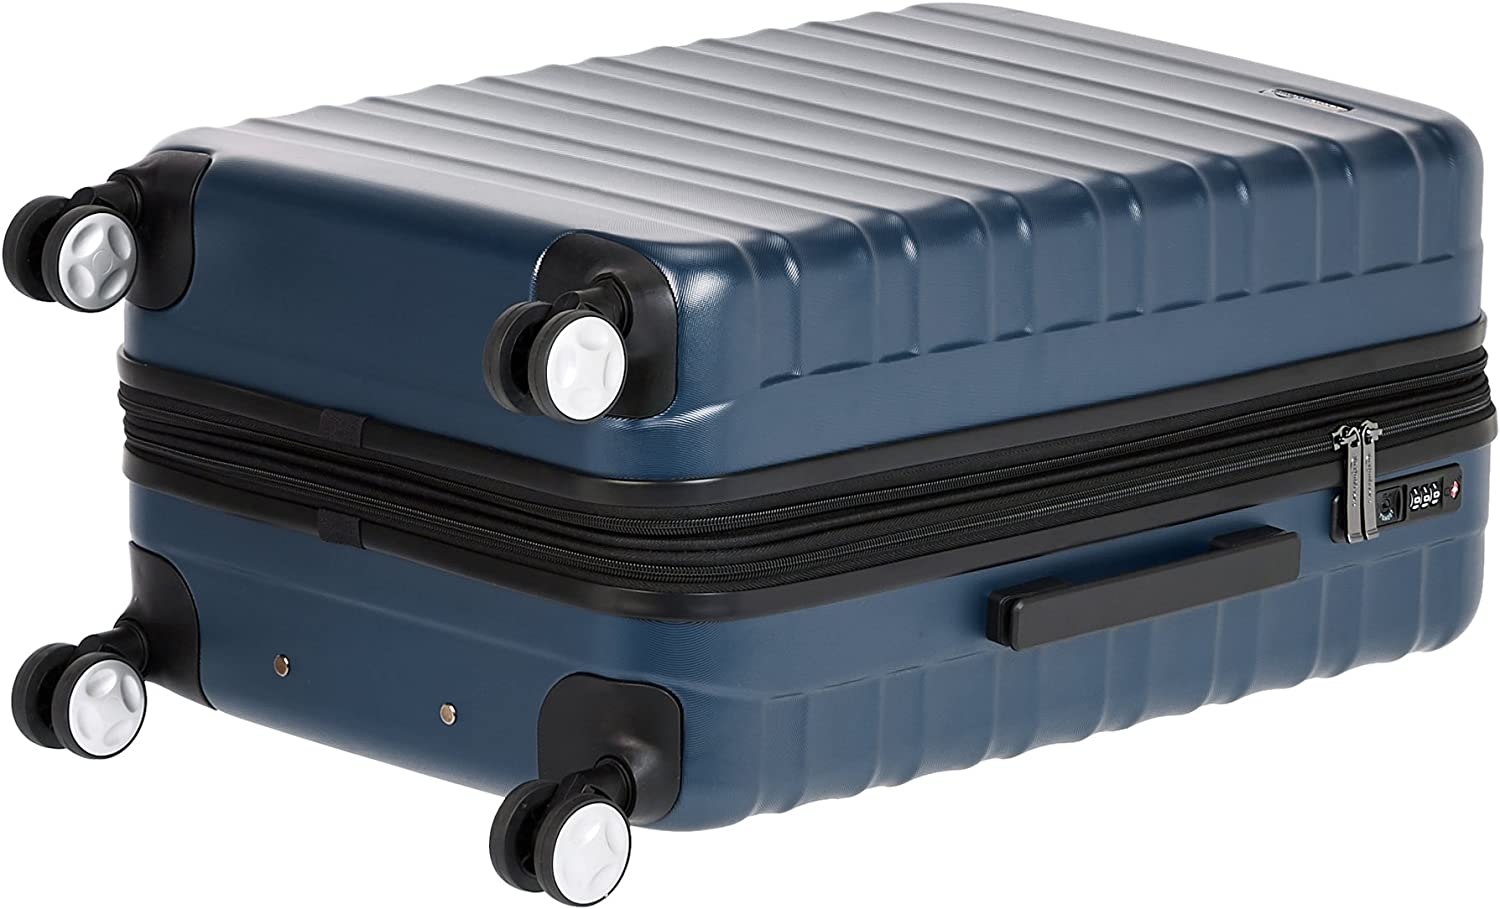 Basics Premium Hardside Spinner Suitcase Luggage with Built-In TSA Lock and Wheels